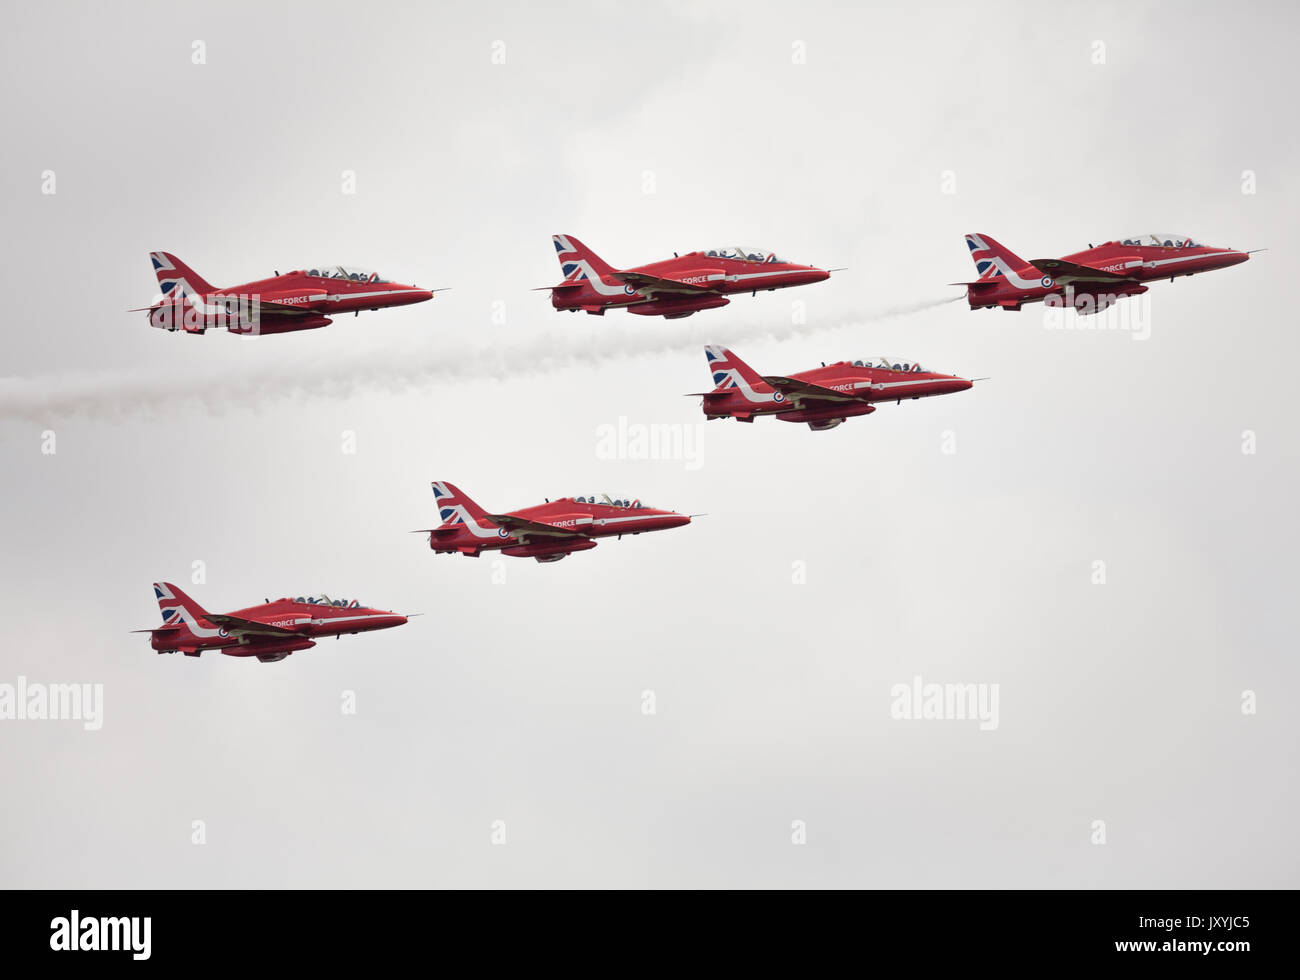 Red Arrows - Stock Image